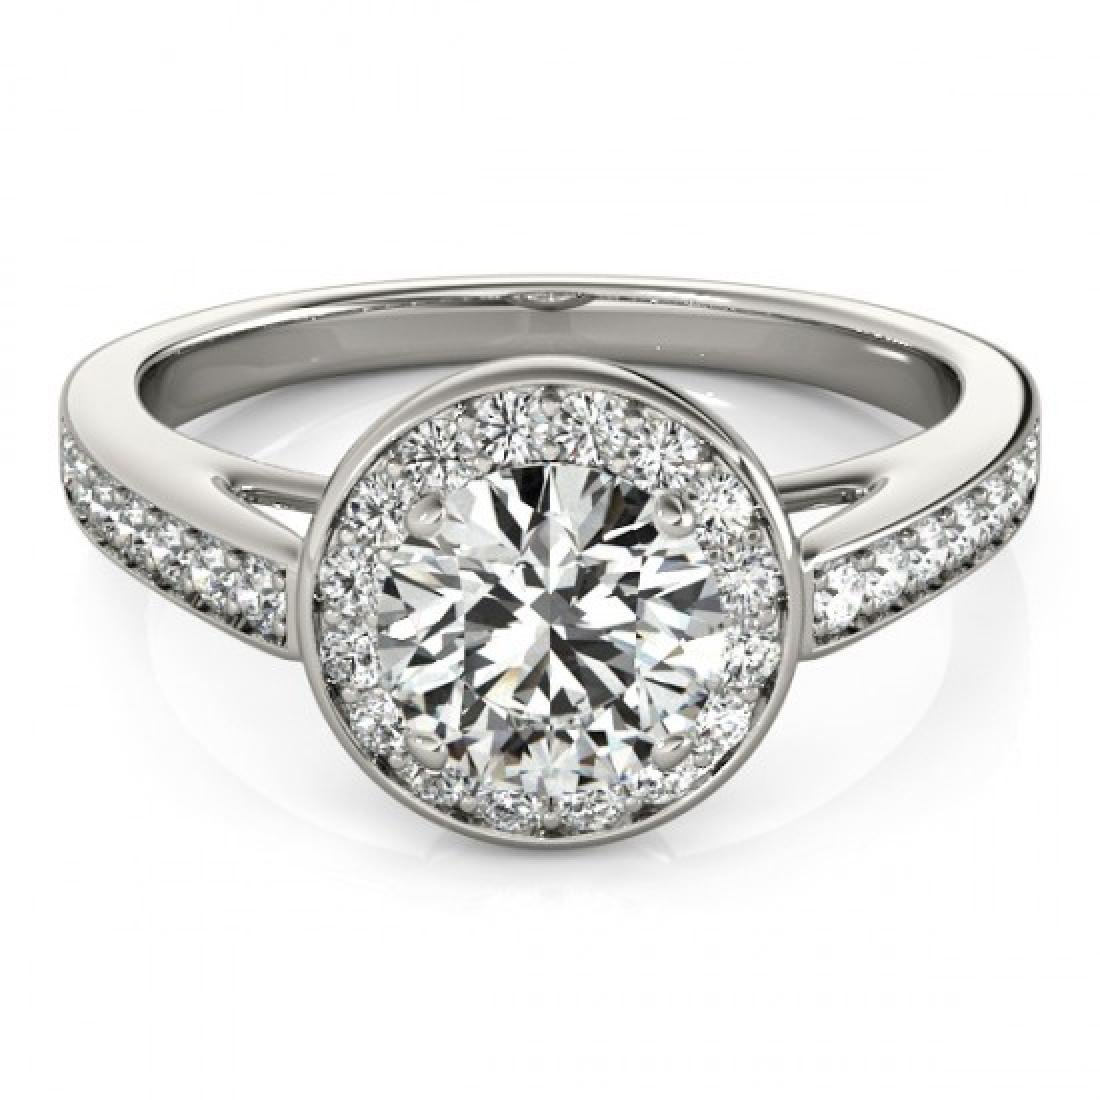 1.16 CTW Certified VS/SI Diamond Solitaire Halo Ring